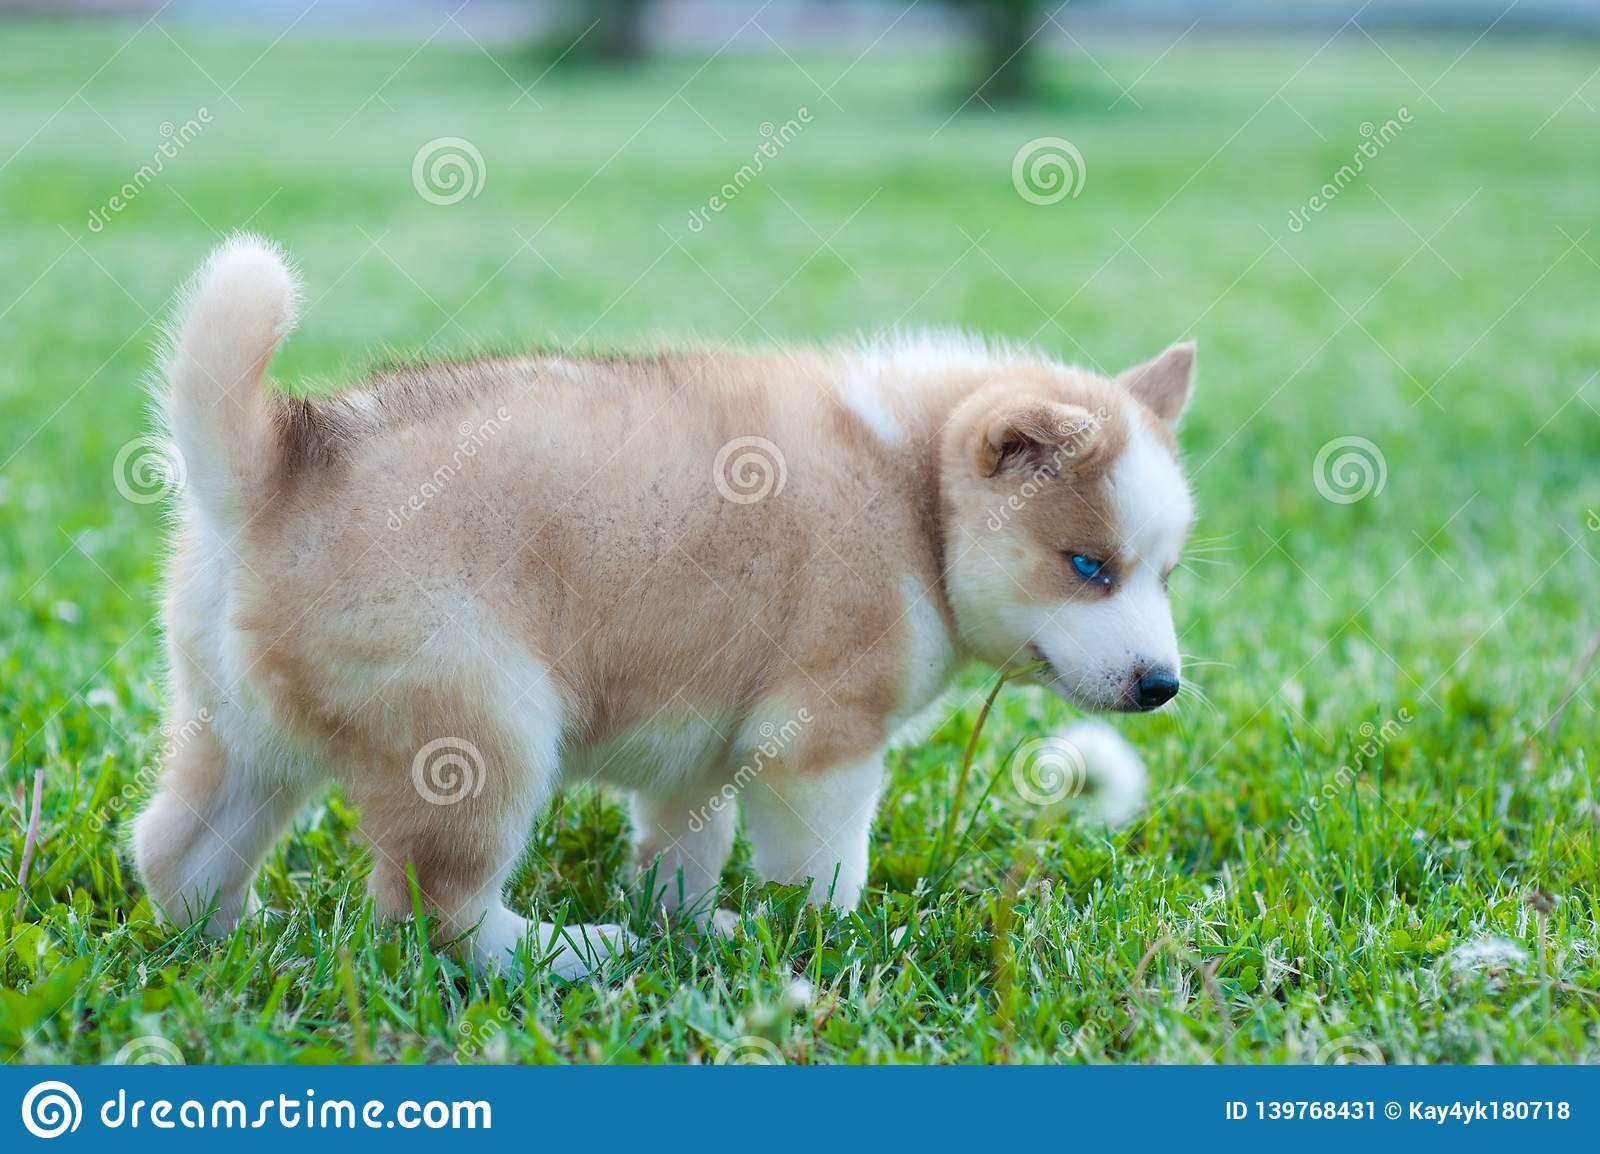 Husky dog grabbed green grass with her mouth